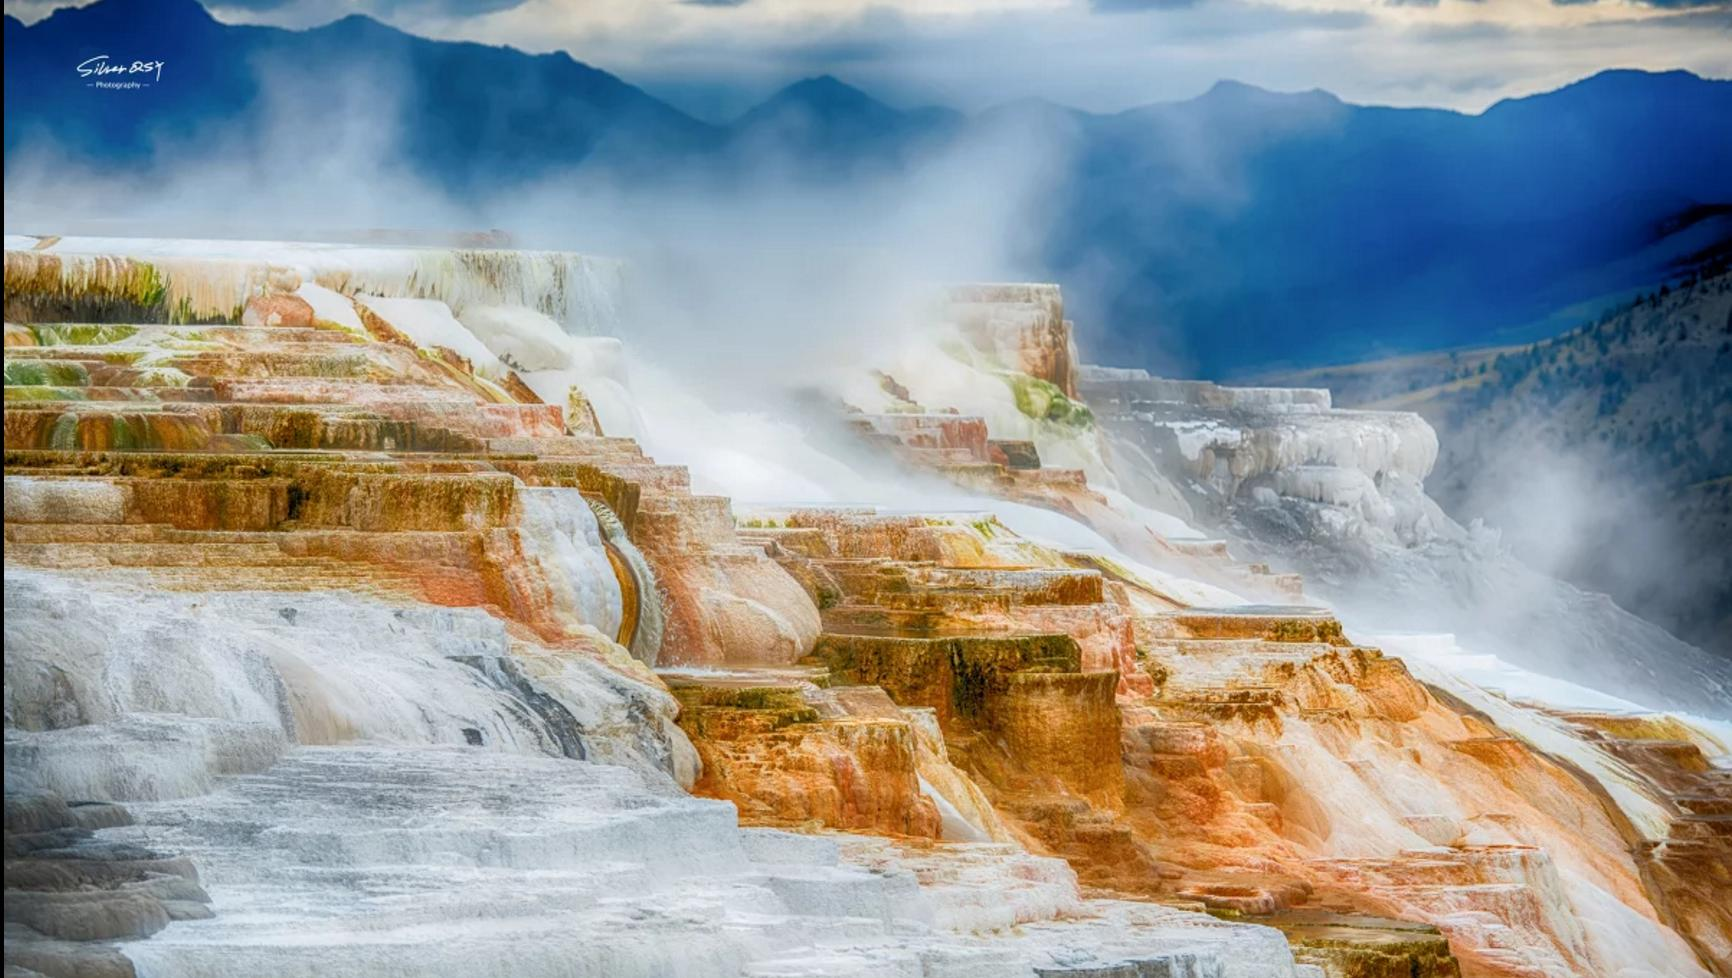 Exclusive 38% off! Yellowstone National Park Trip @ Lulutrip